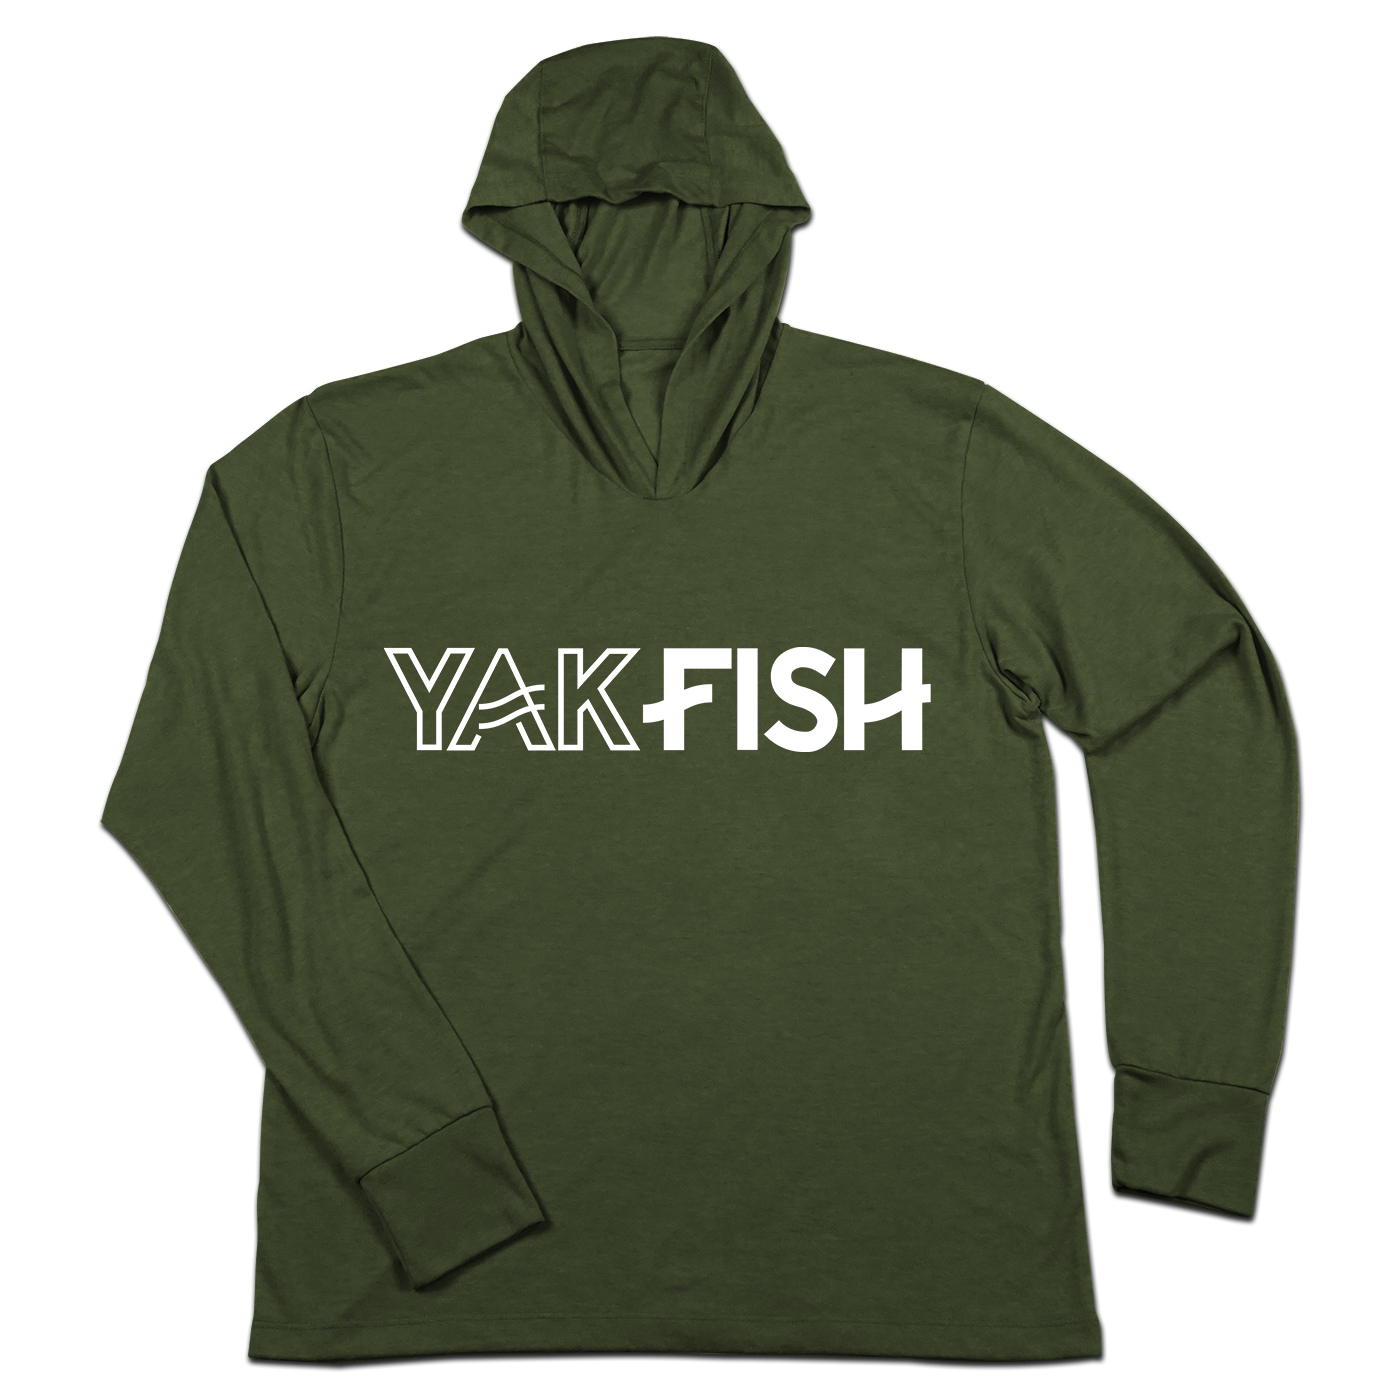 #YAKFISH TriBlend Hoodie Shirt - White - Hat Mount for GoPro